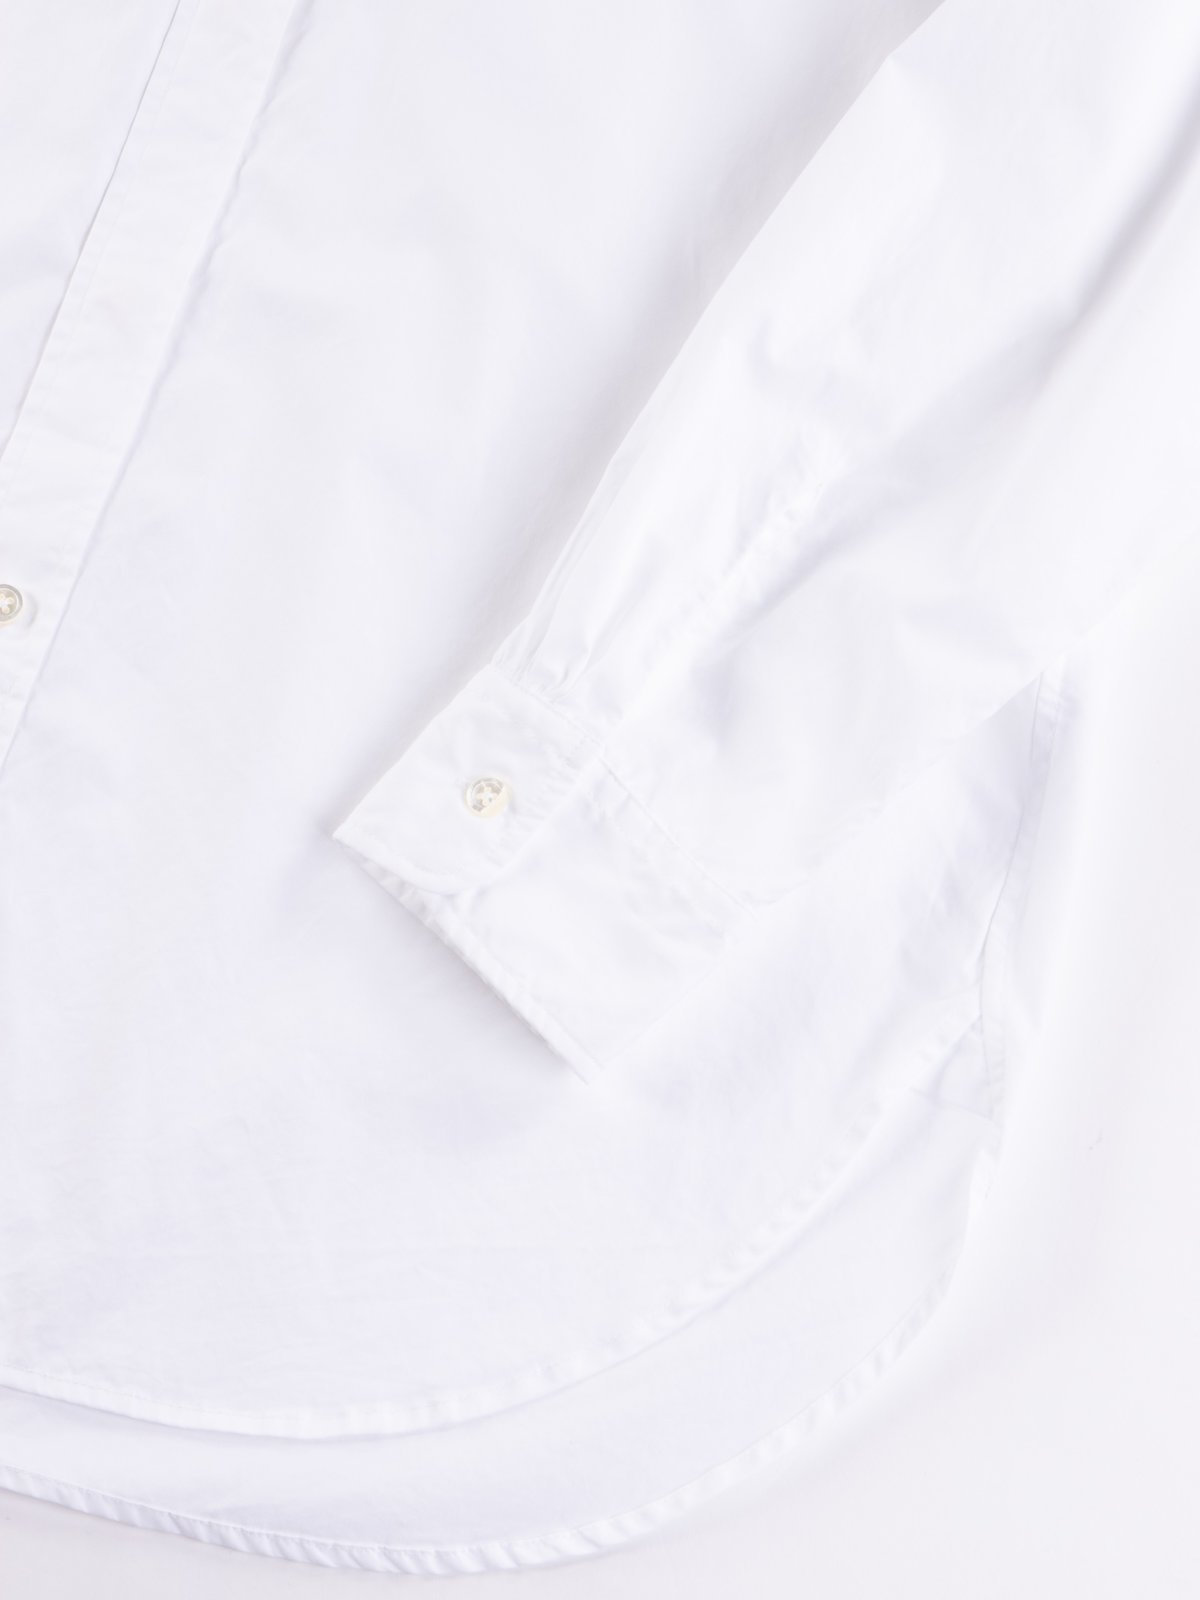 White 100's 2Ply Broadcloth Rounded Collar Shirt - Image 4